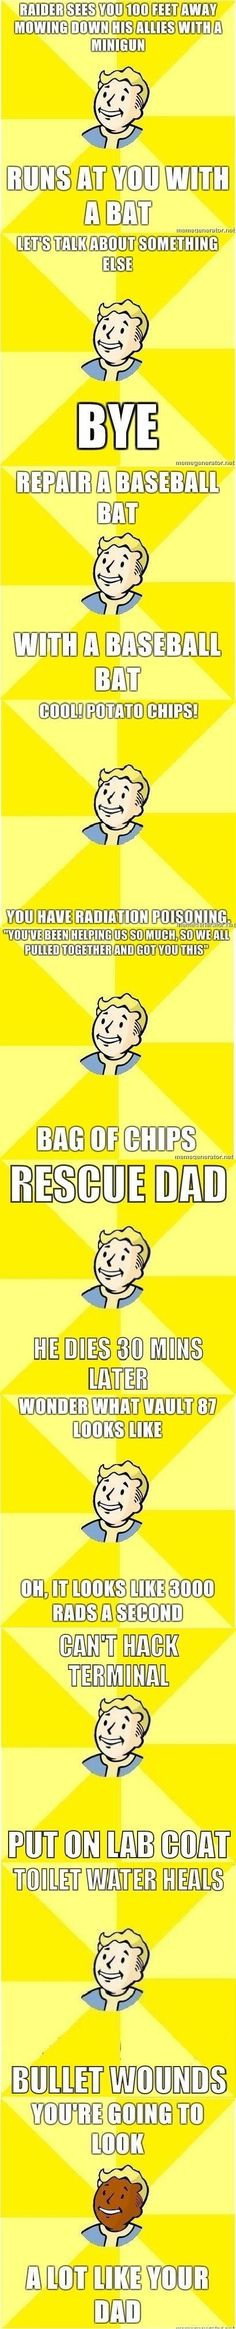 Fallout logic.  // funny pictures - funny photos - funny images - funny pics - funny quotes - #lol #humor #funnypictures